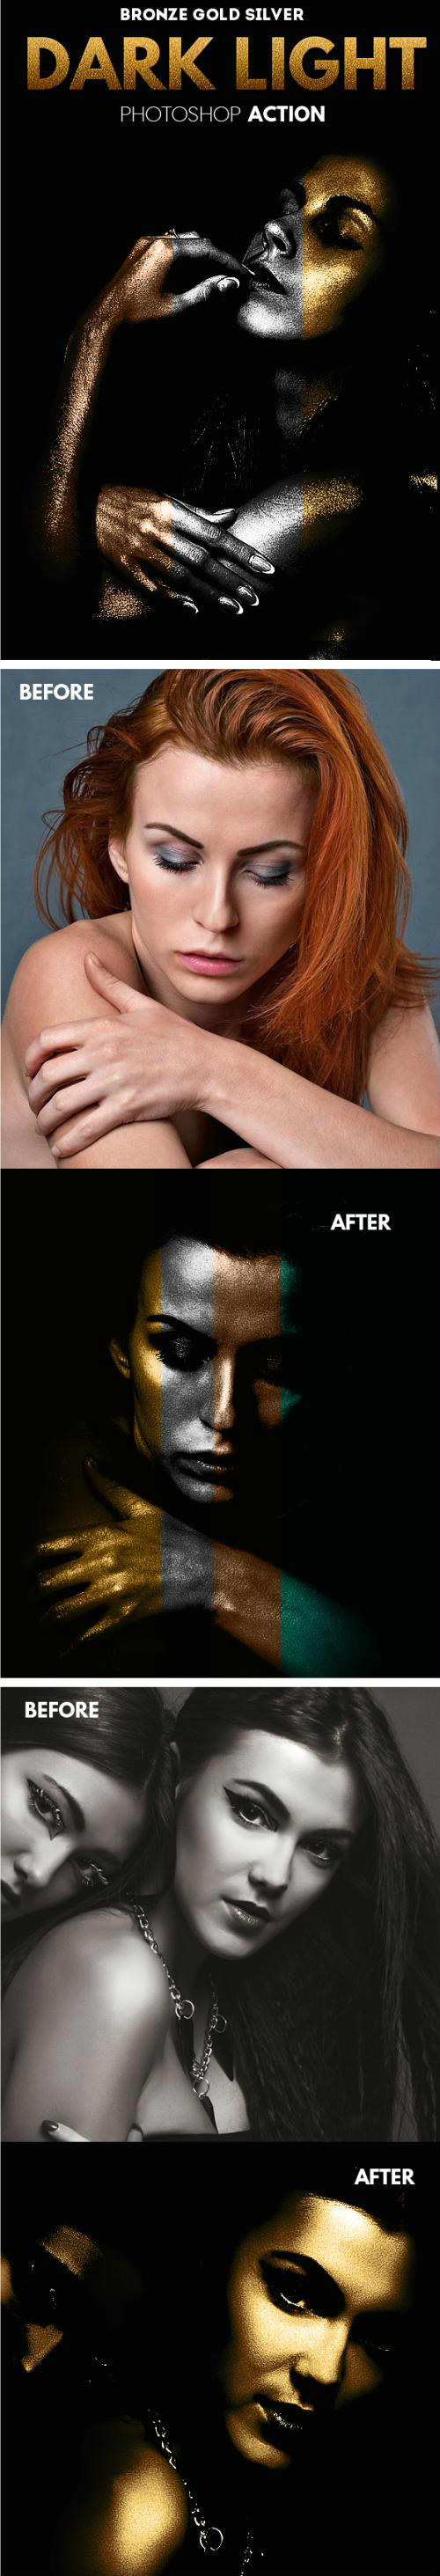 Dark Light Effect with Gold Silver and Bronze Skin Photoshop Action 17515658